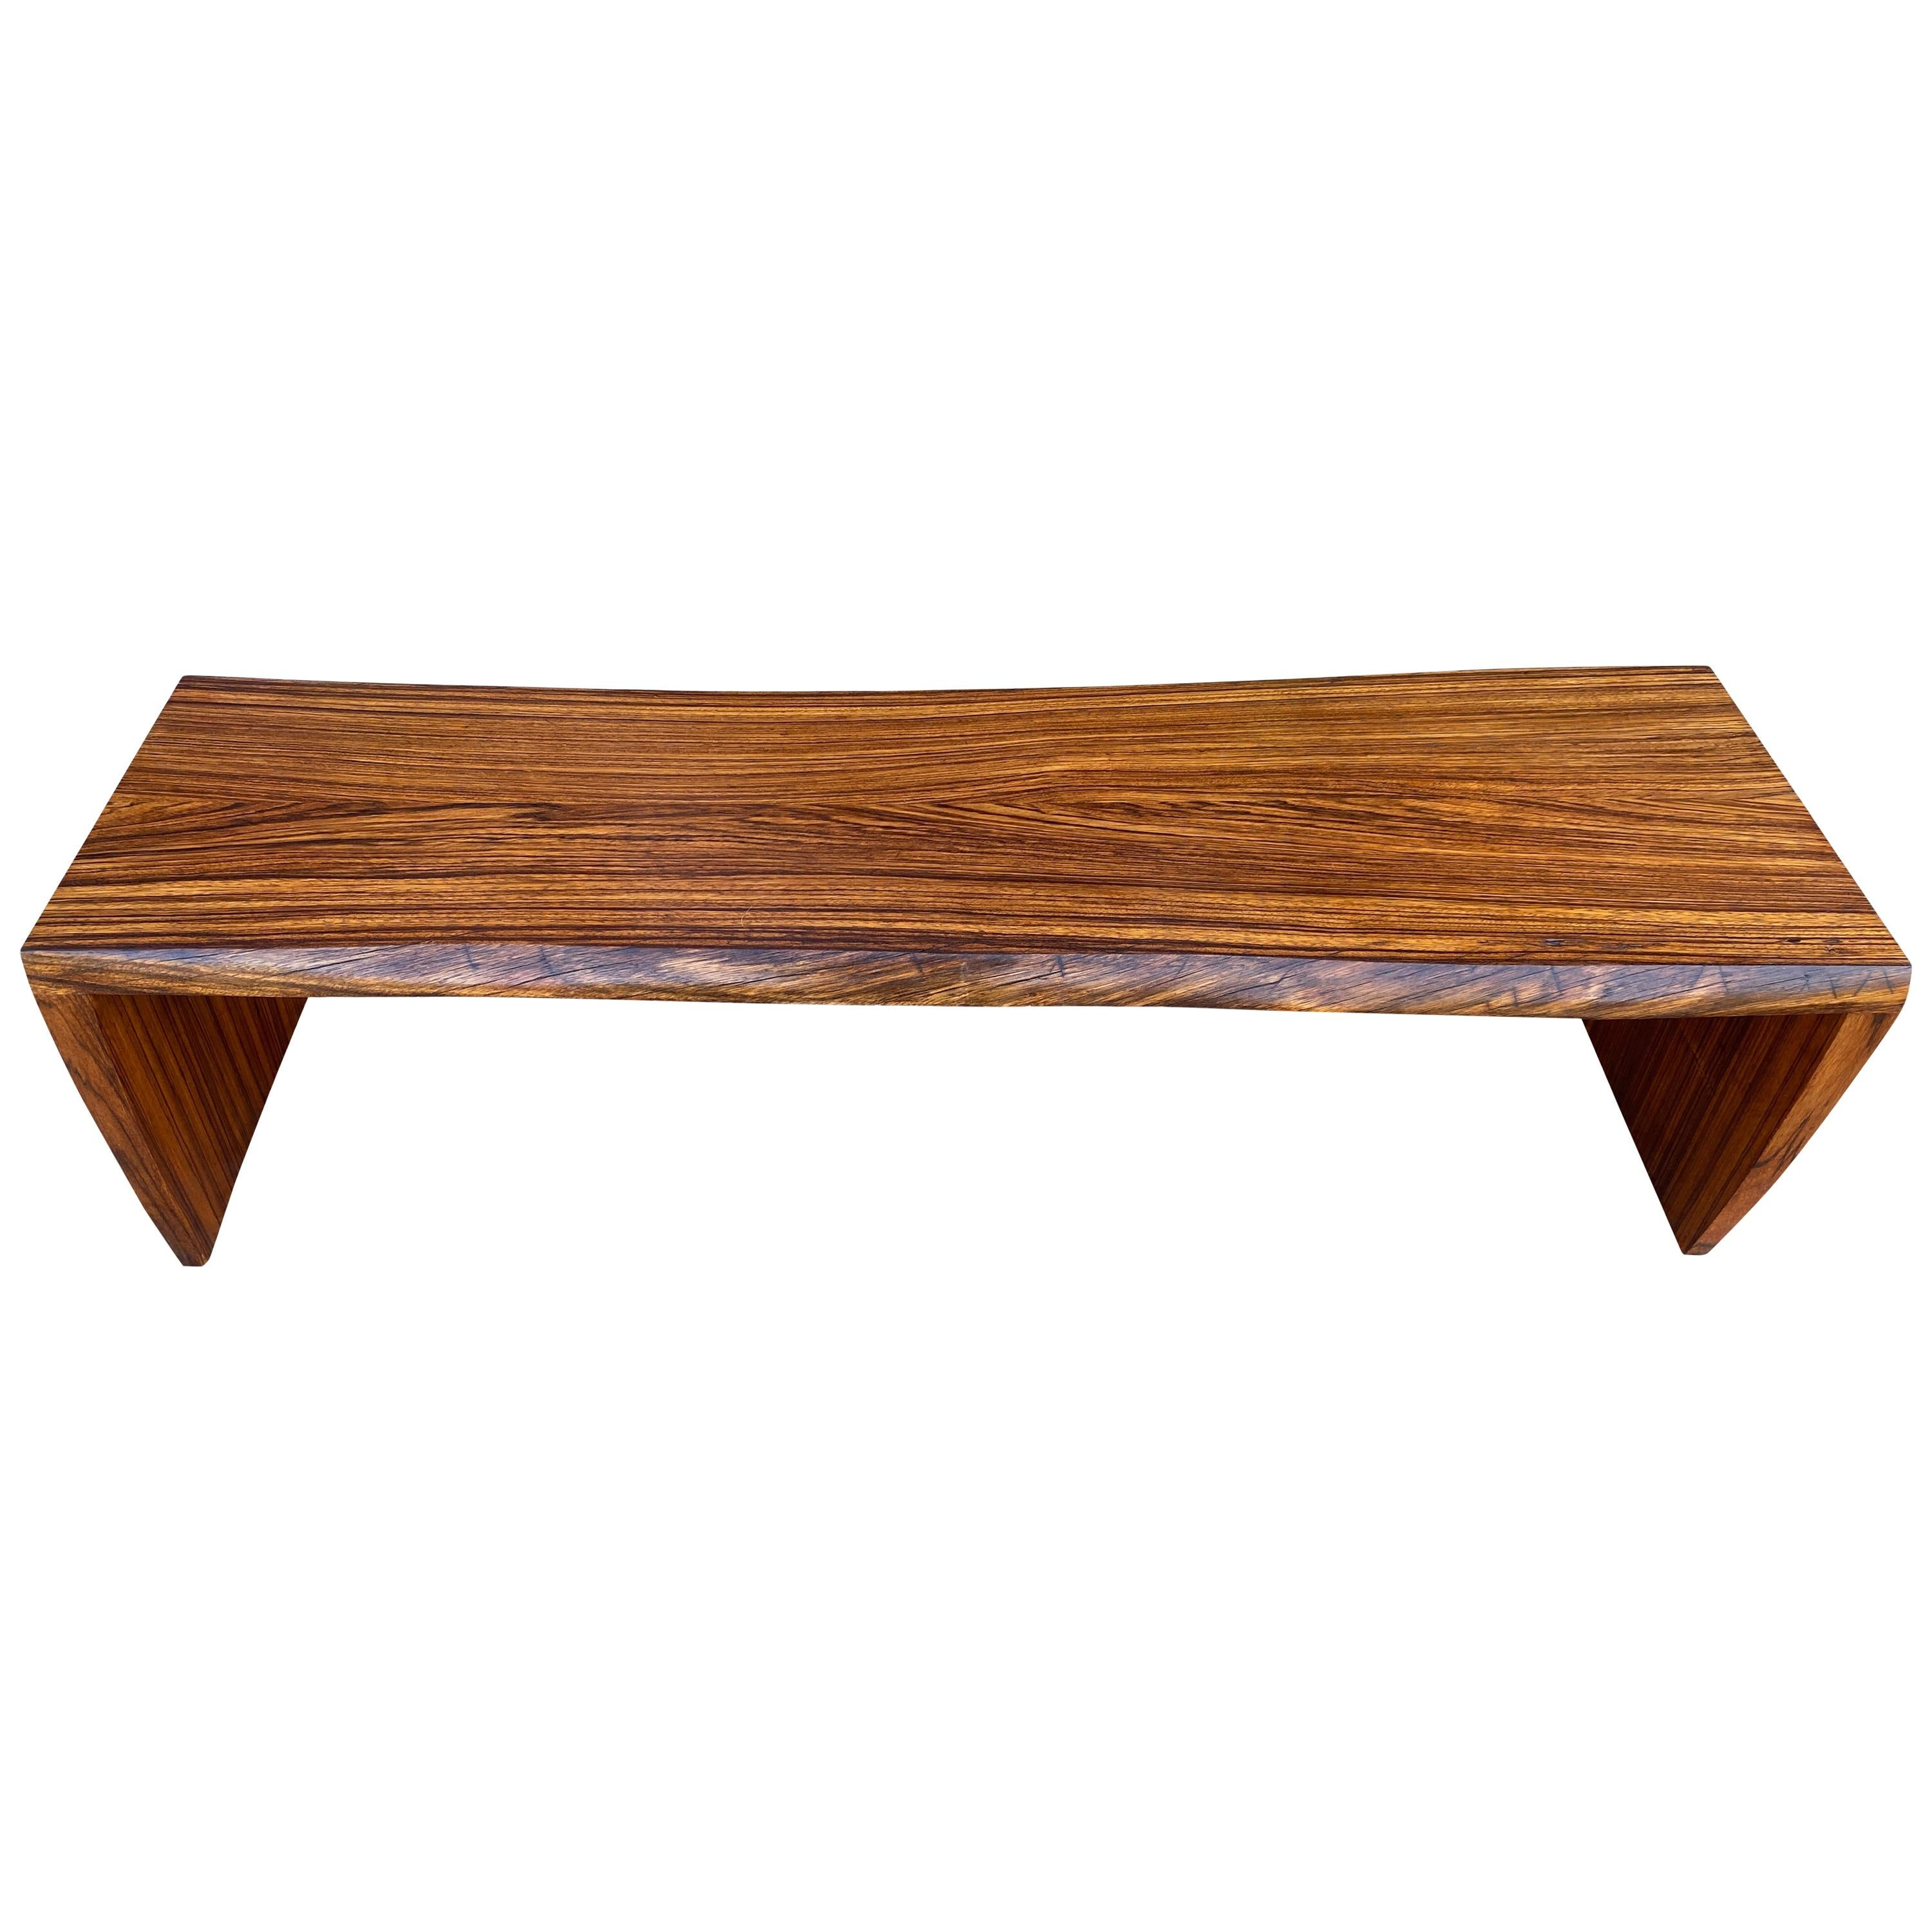 Midcentury Solid Rosewood Studio Craft Coffee Table Bench Style of Nakashima